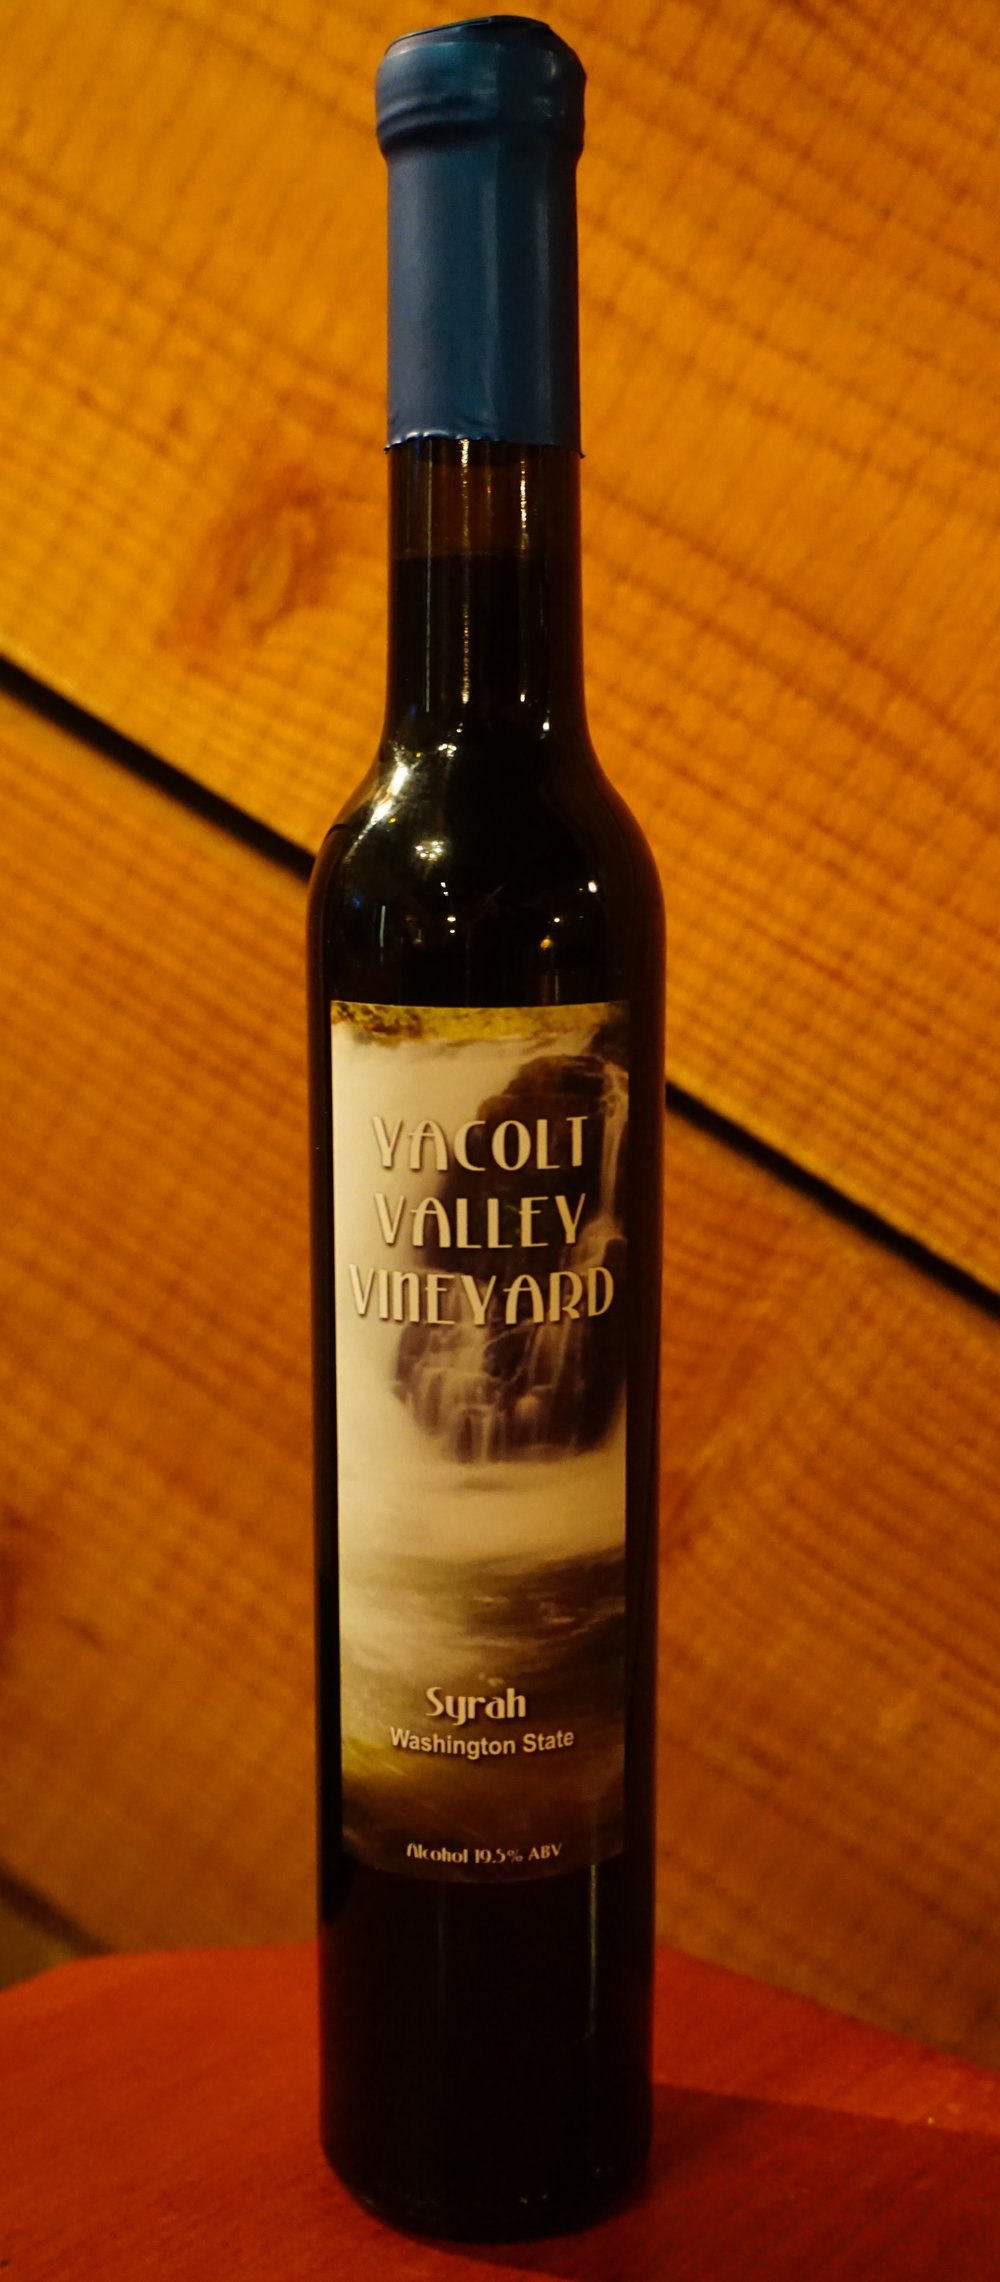 Moulton Falls Winery collaborated with Yacolt Valley Vineyard to create this port-style dessert wine. Viki Eierdam